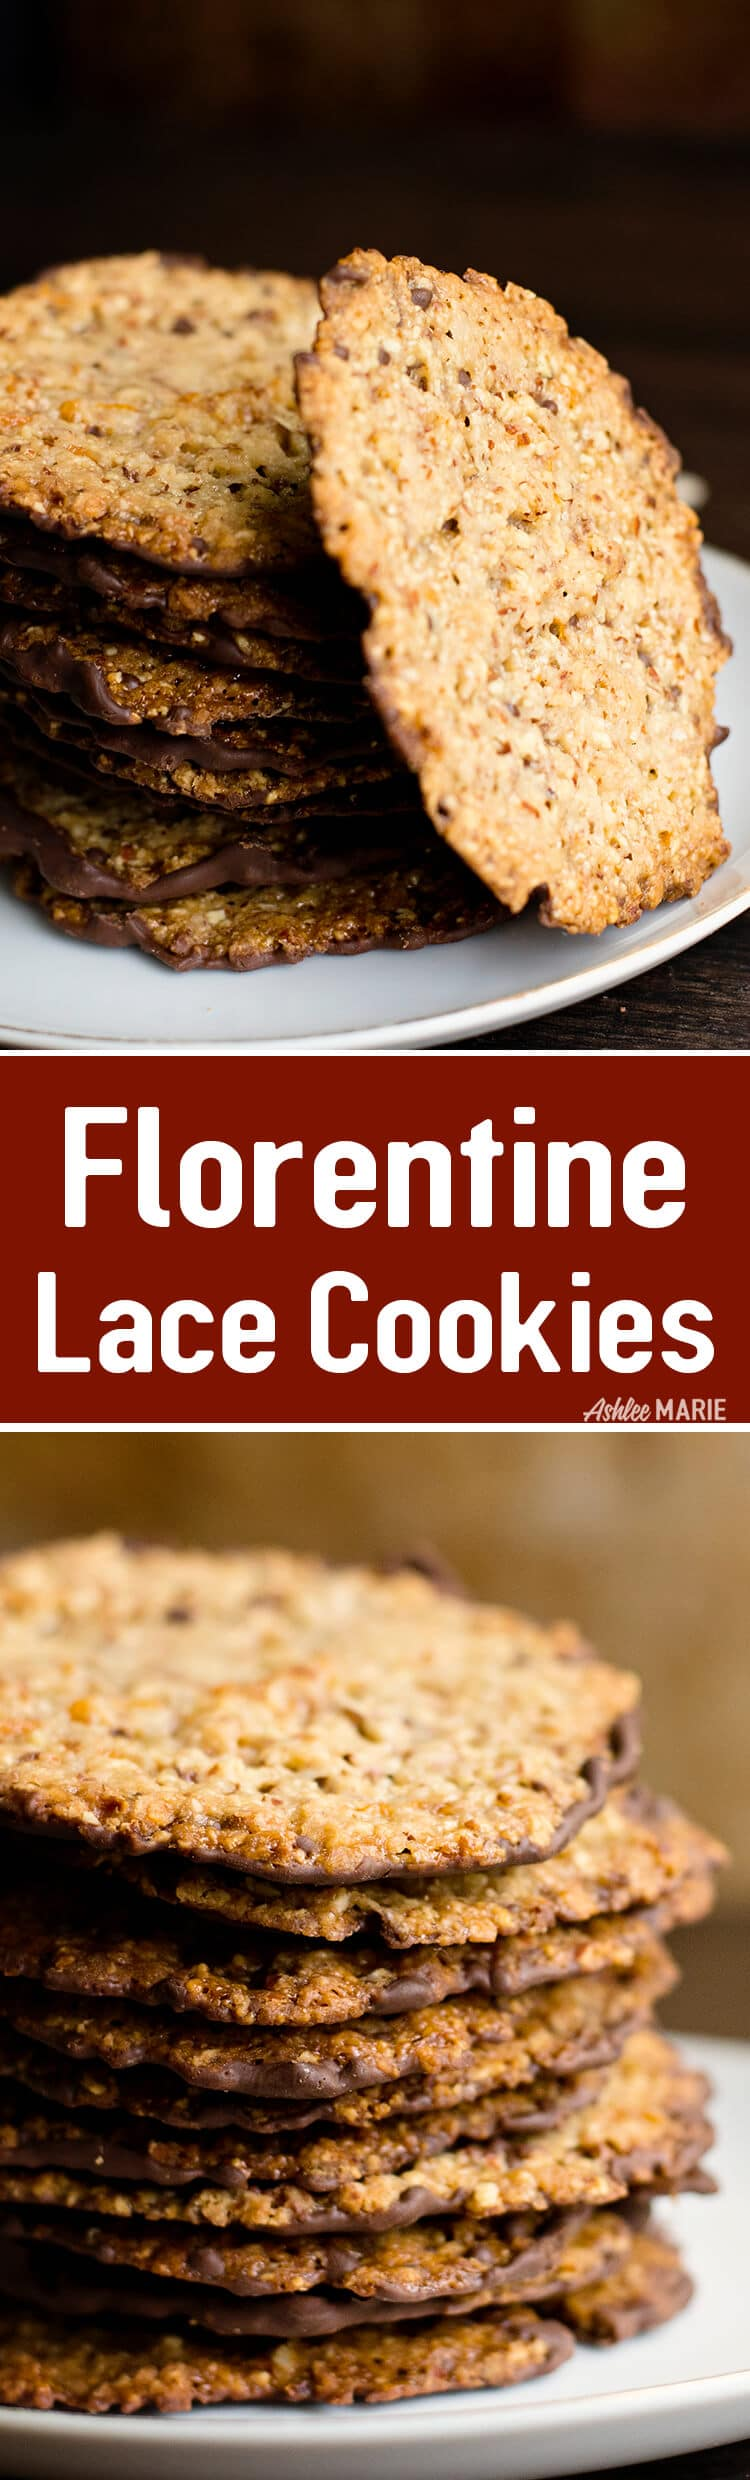 these florentine italian lace cookies are easy to make and delicious